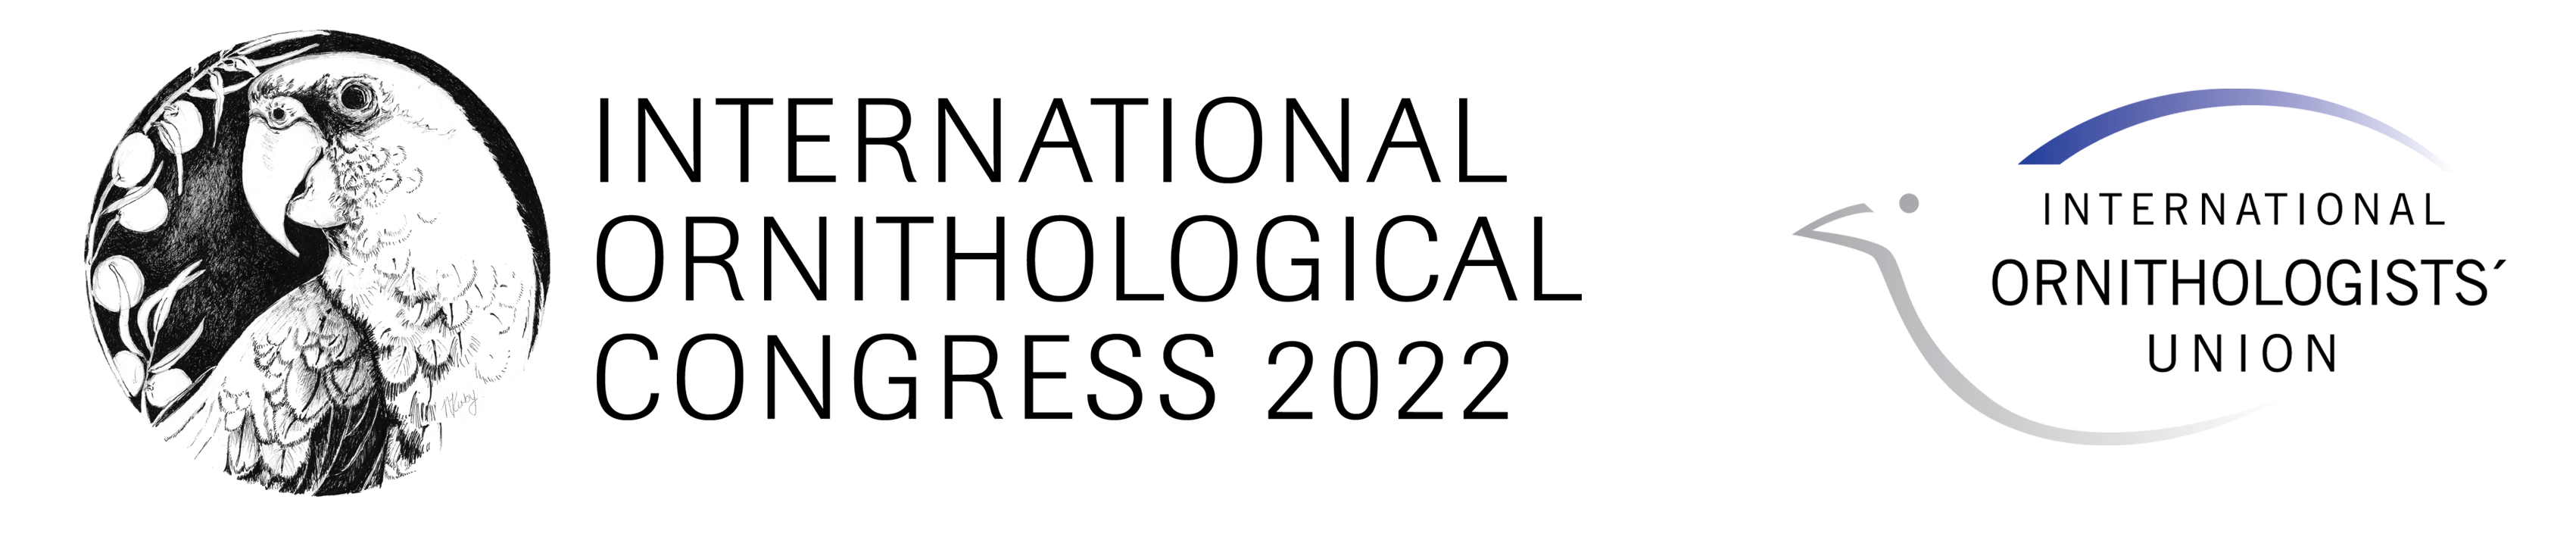 International Ornithological Congress 2022